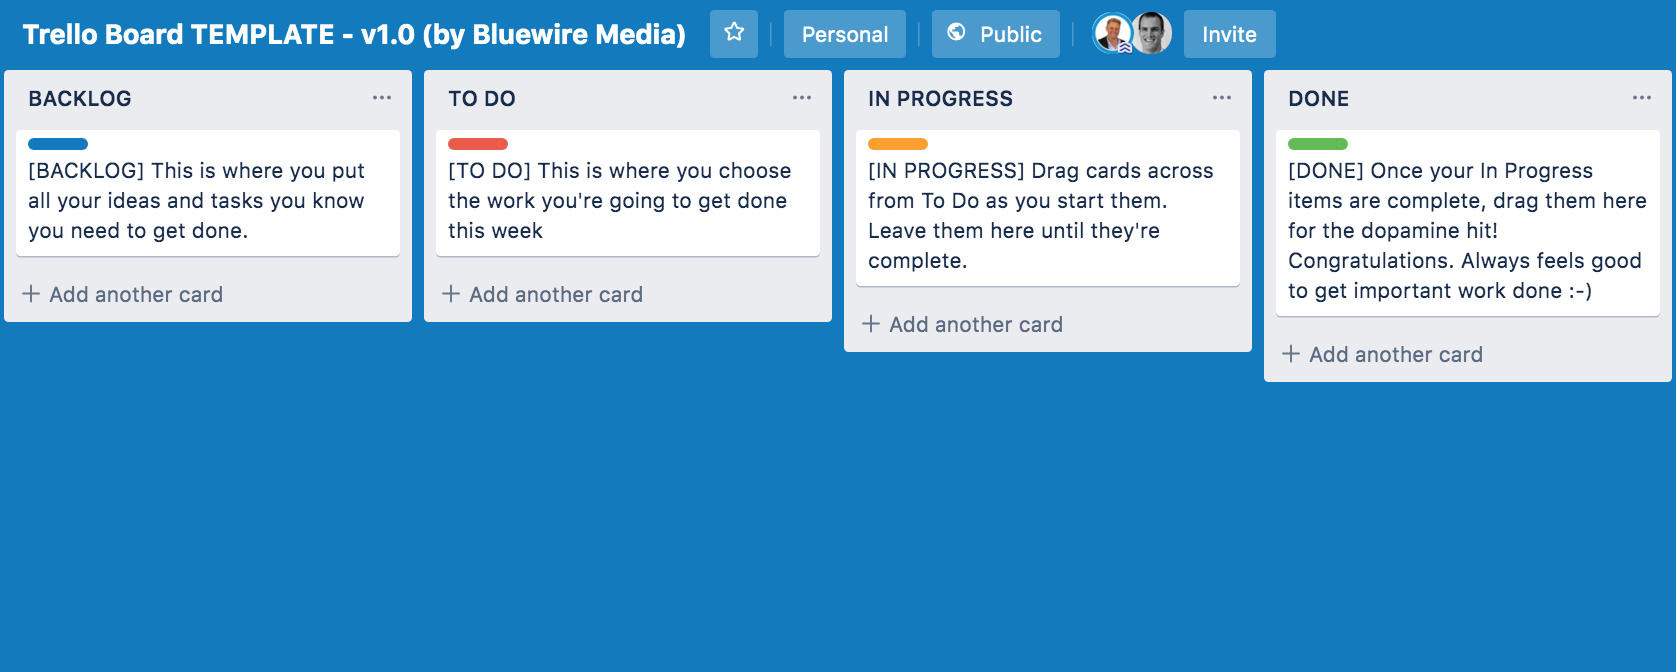 Trello Board Template